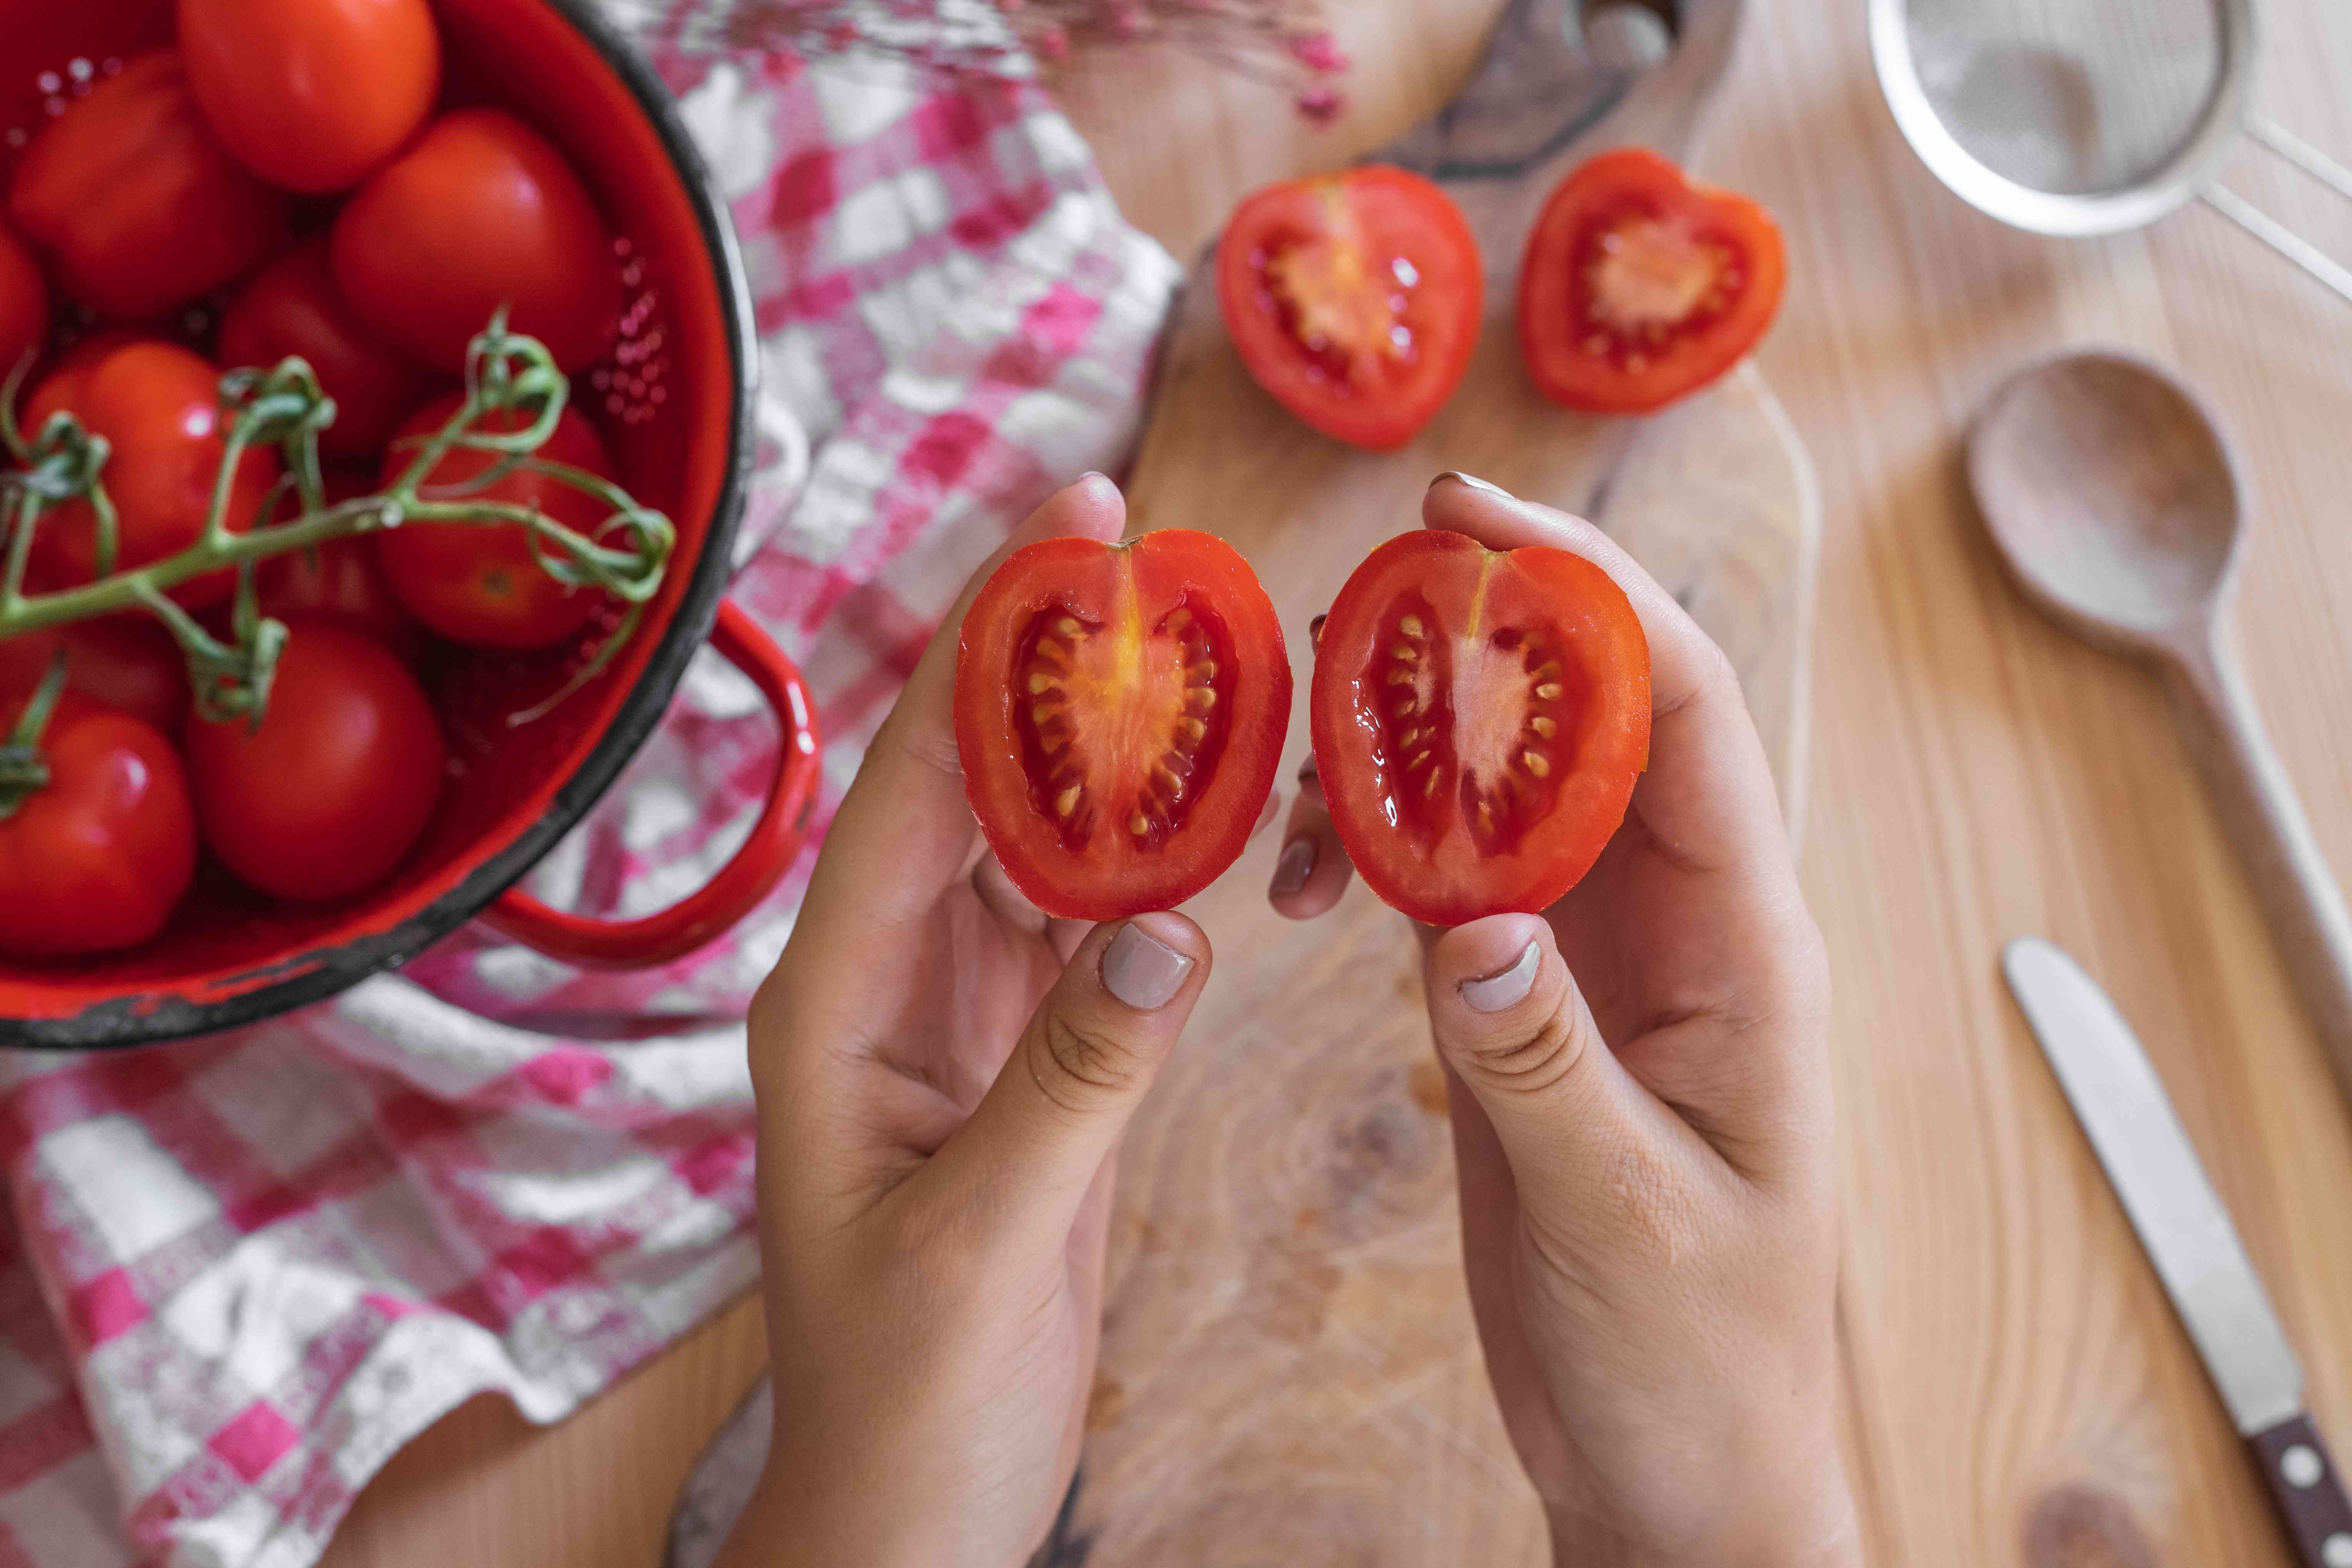 hands hold up small tomato cut in half, with kitchen tools and tomatoes on wooden table